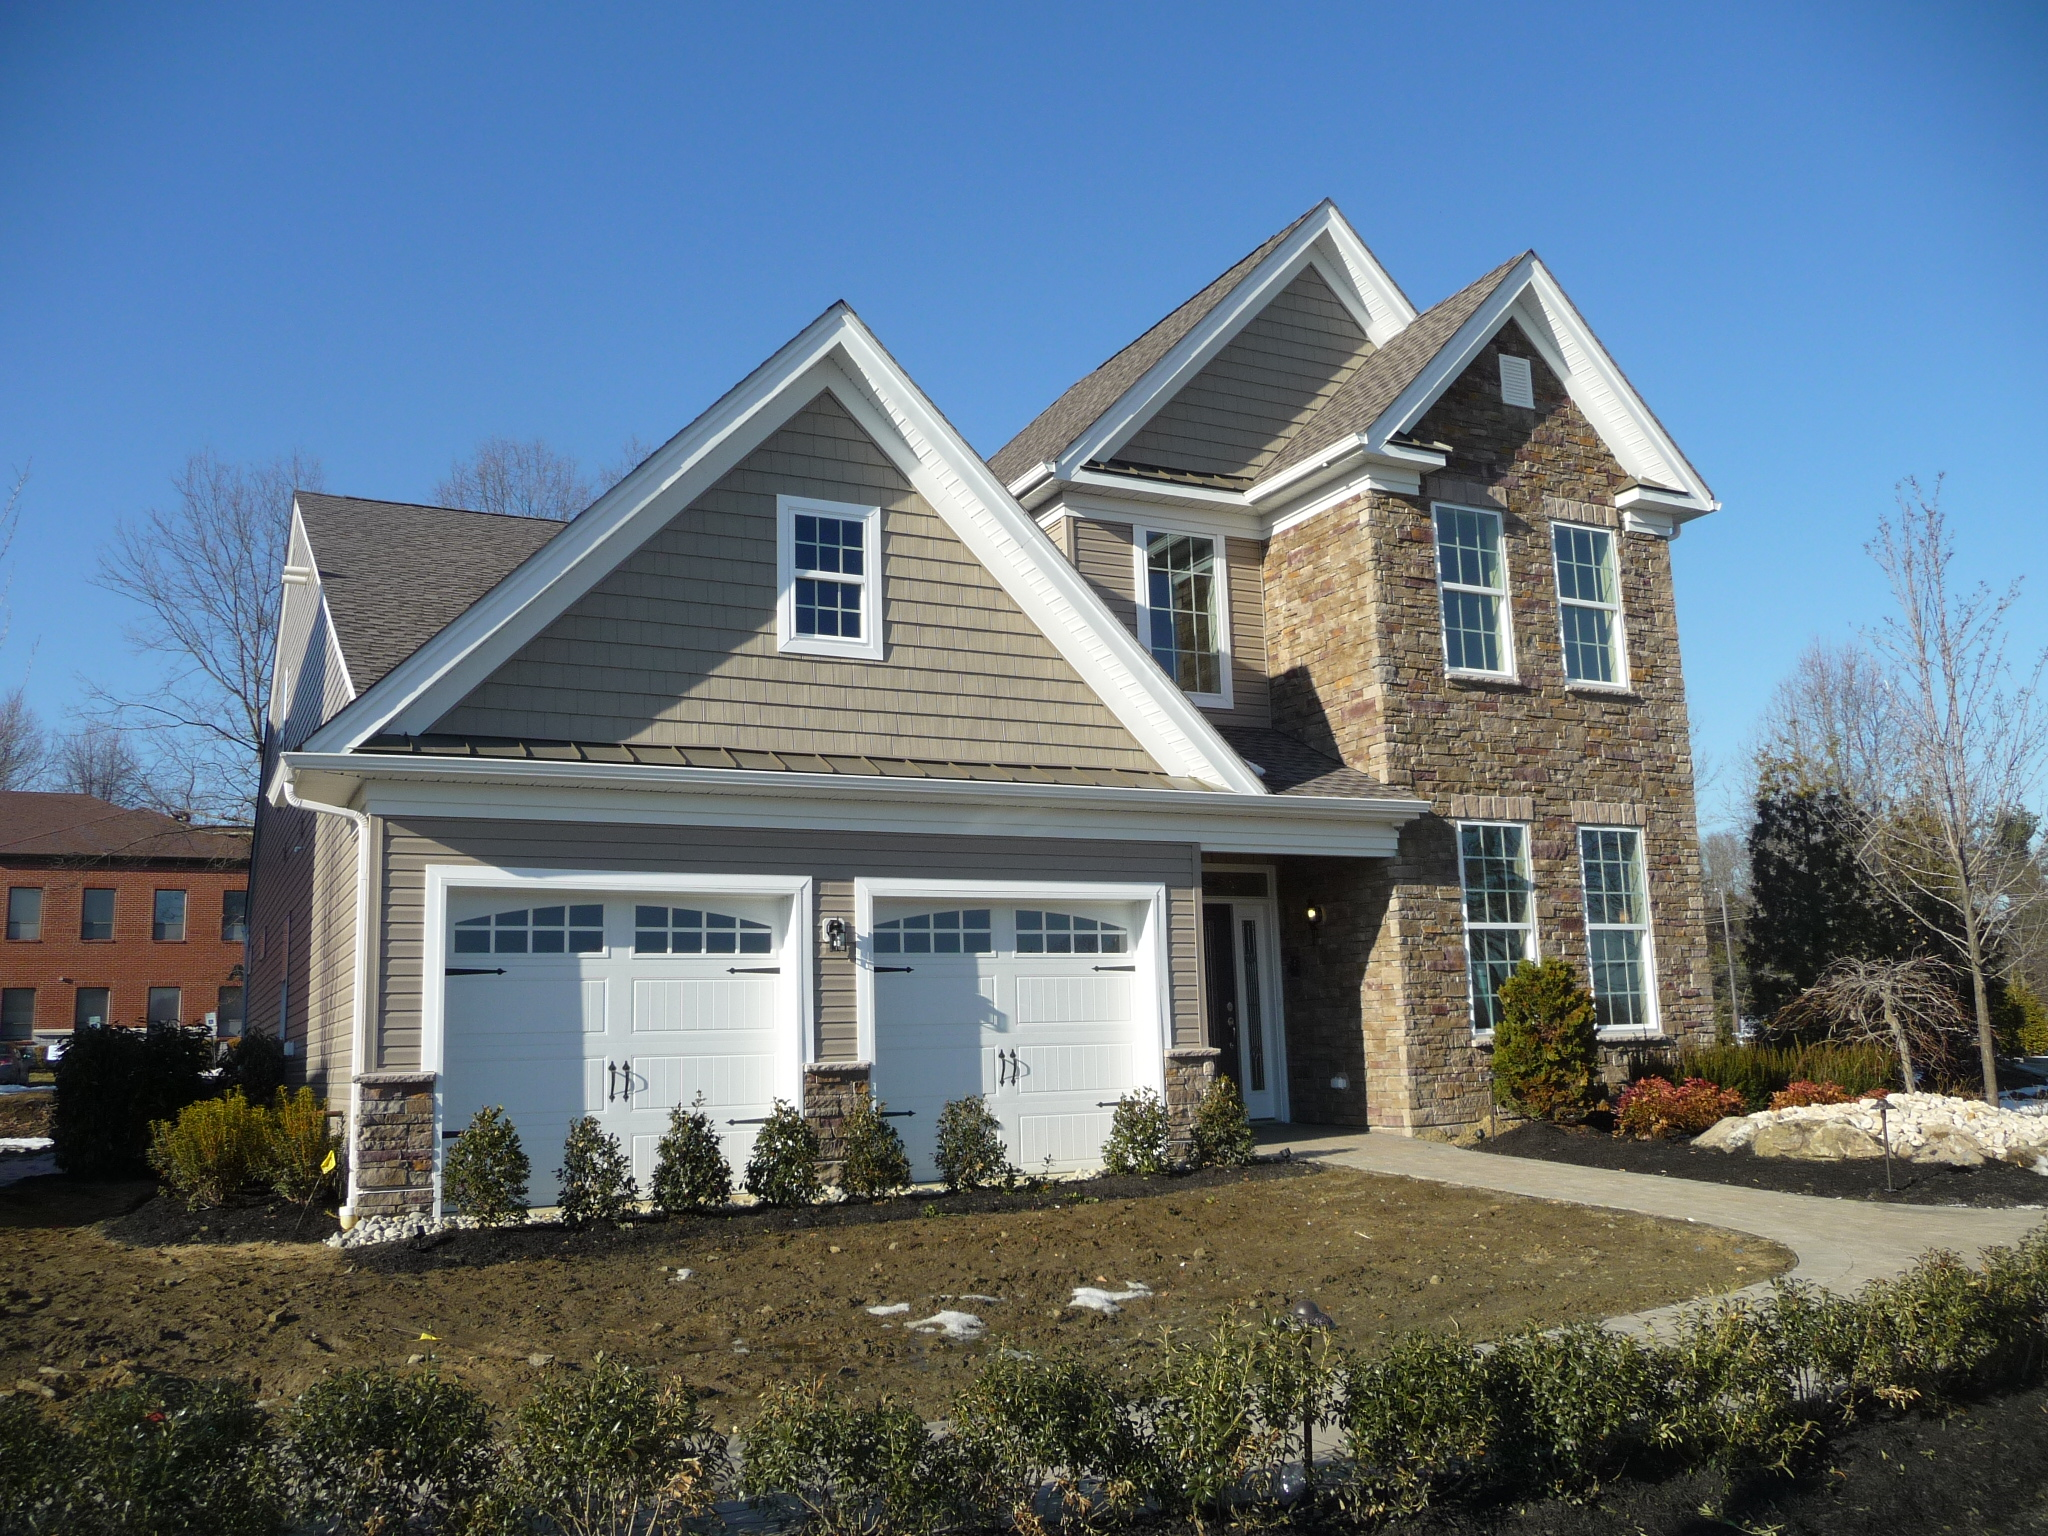 One of the models at Regency at Trotters Creek in Tinton Falls NJ